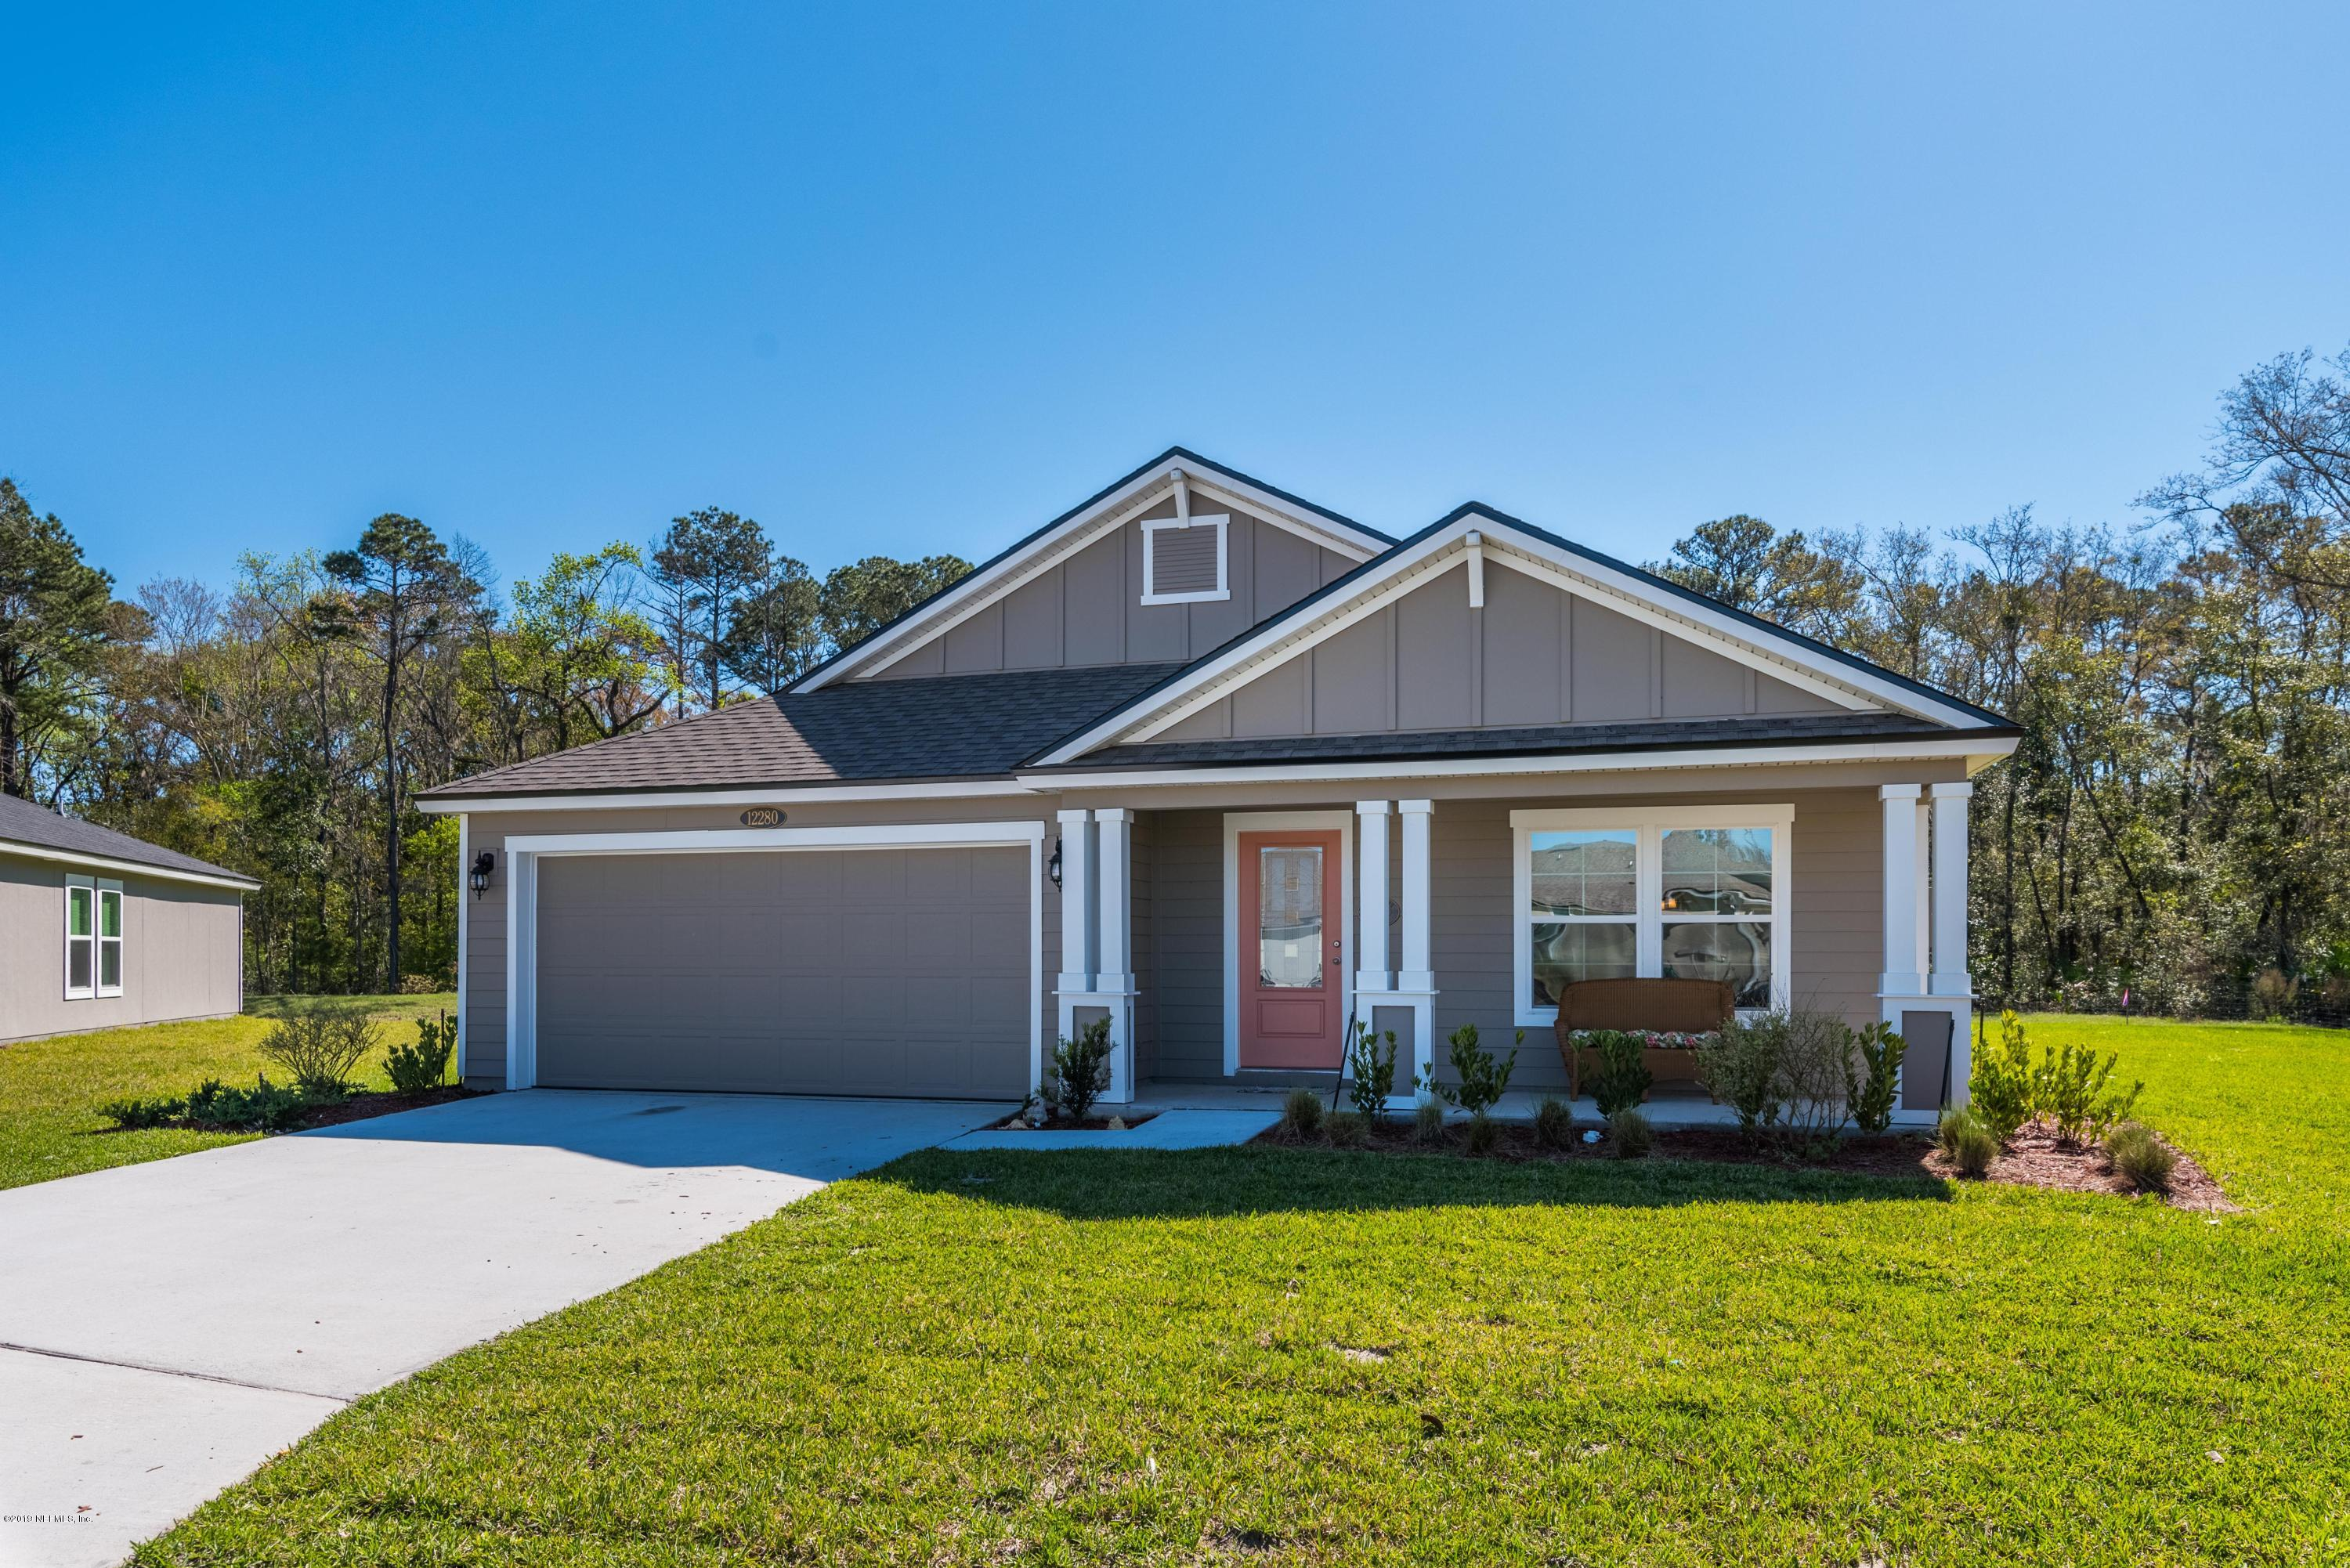 12280 ITANI, JACKSONVILLE, FLORIDA 32226, 3 Bedrooms Bedrooms, ,2 BathroomsBathrooms,Residential - single family,For sale,ITANI,984758